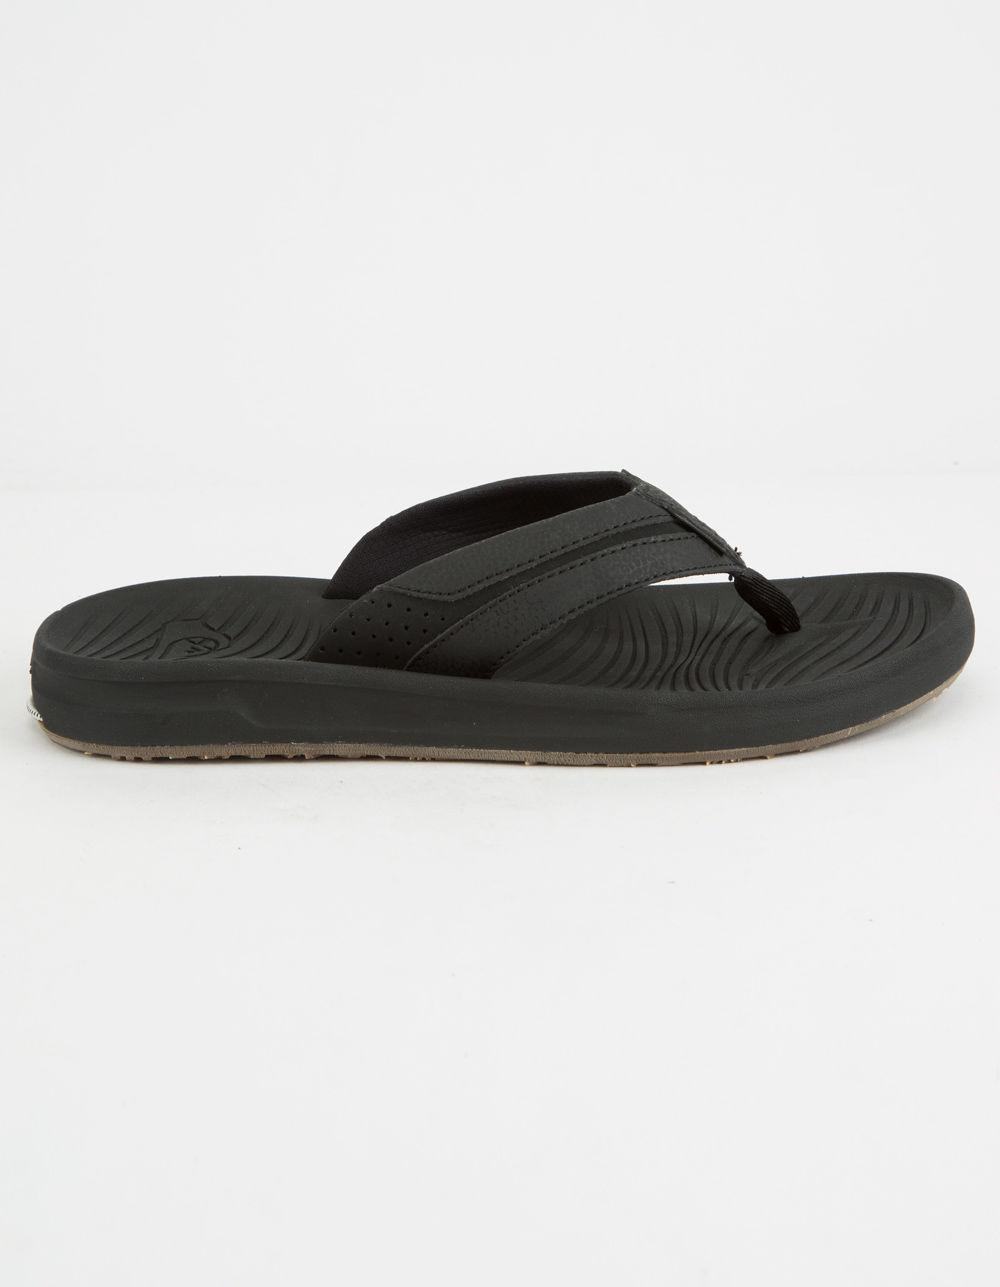 51c66482cdb492 Lyst - Quiksilver Travel Oasis Mens Sandals in Black for Men